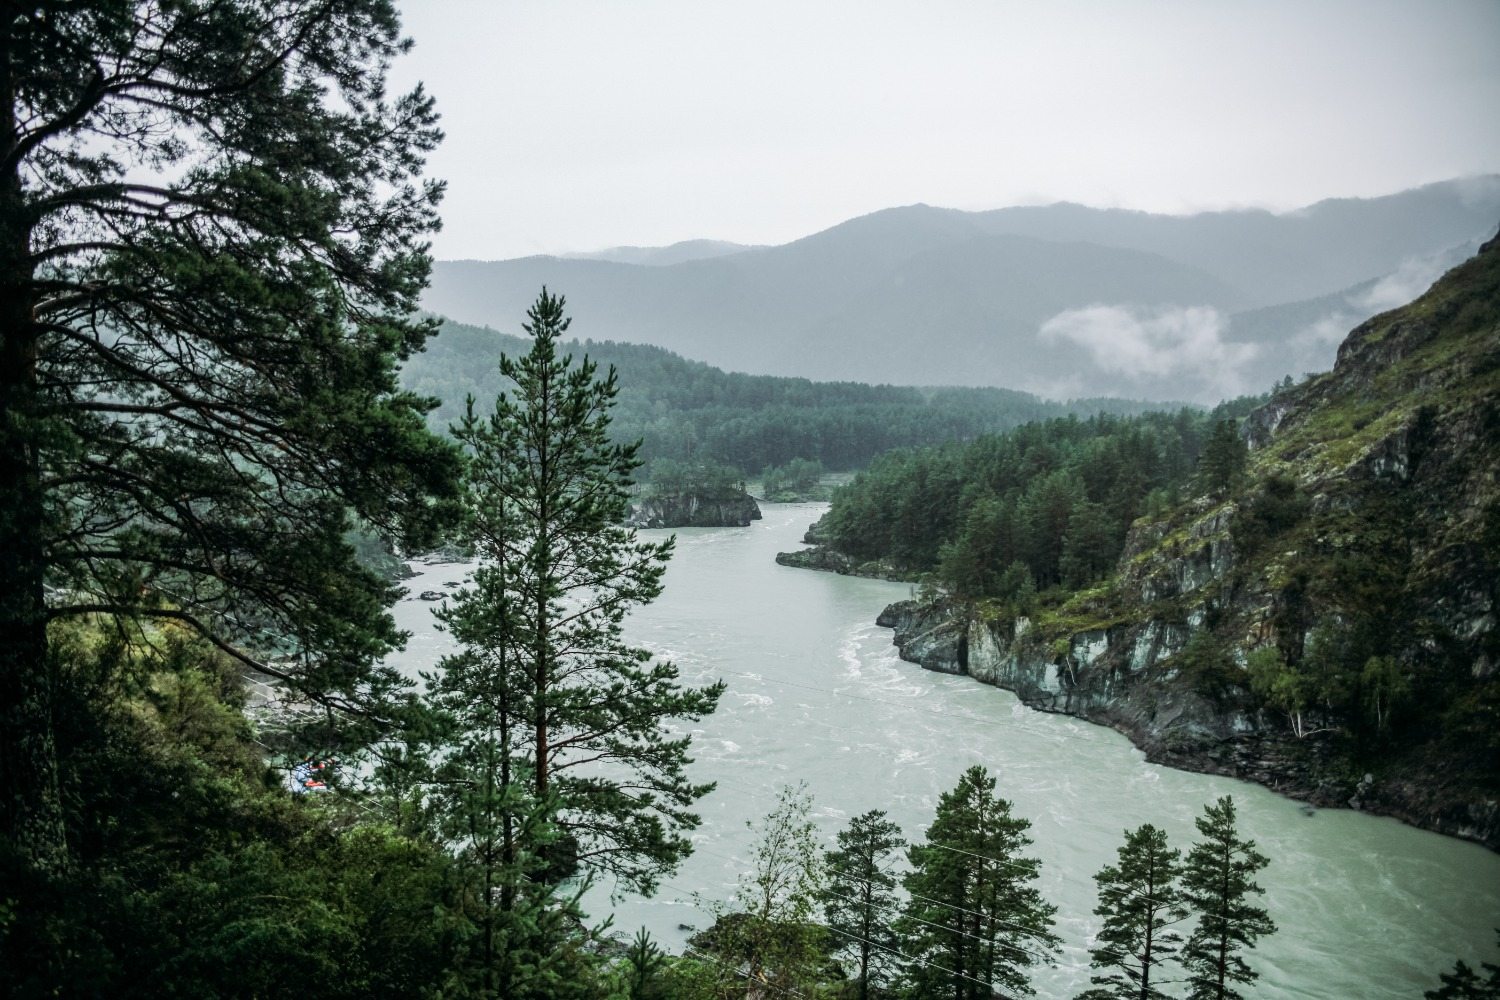 Foggy skies in forest overlooking winding river